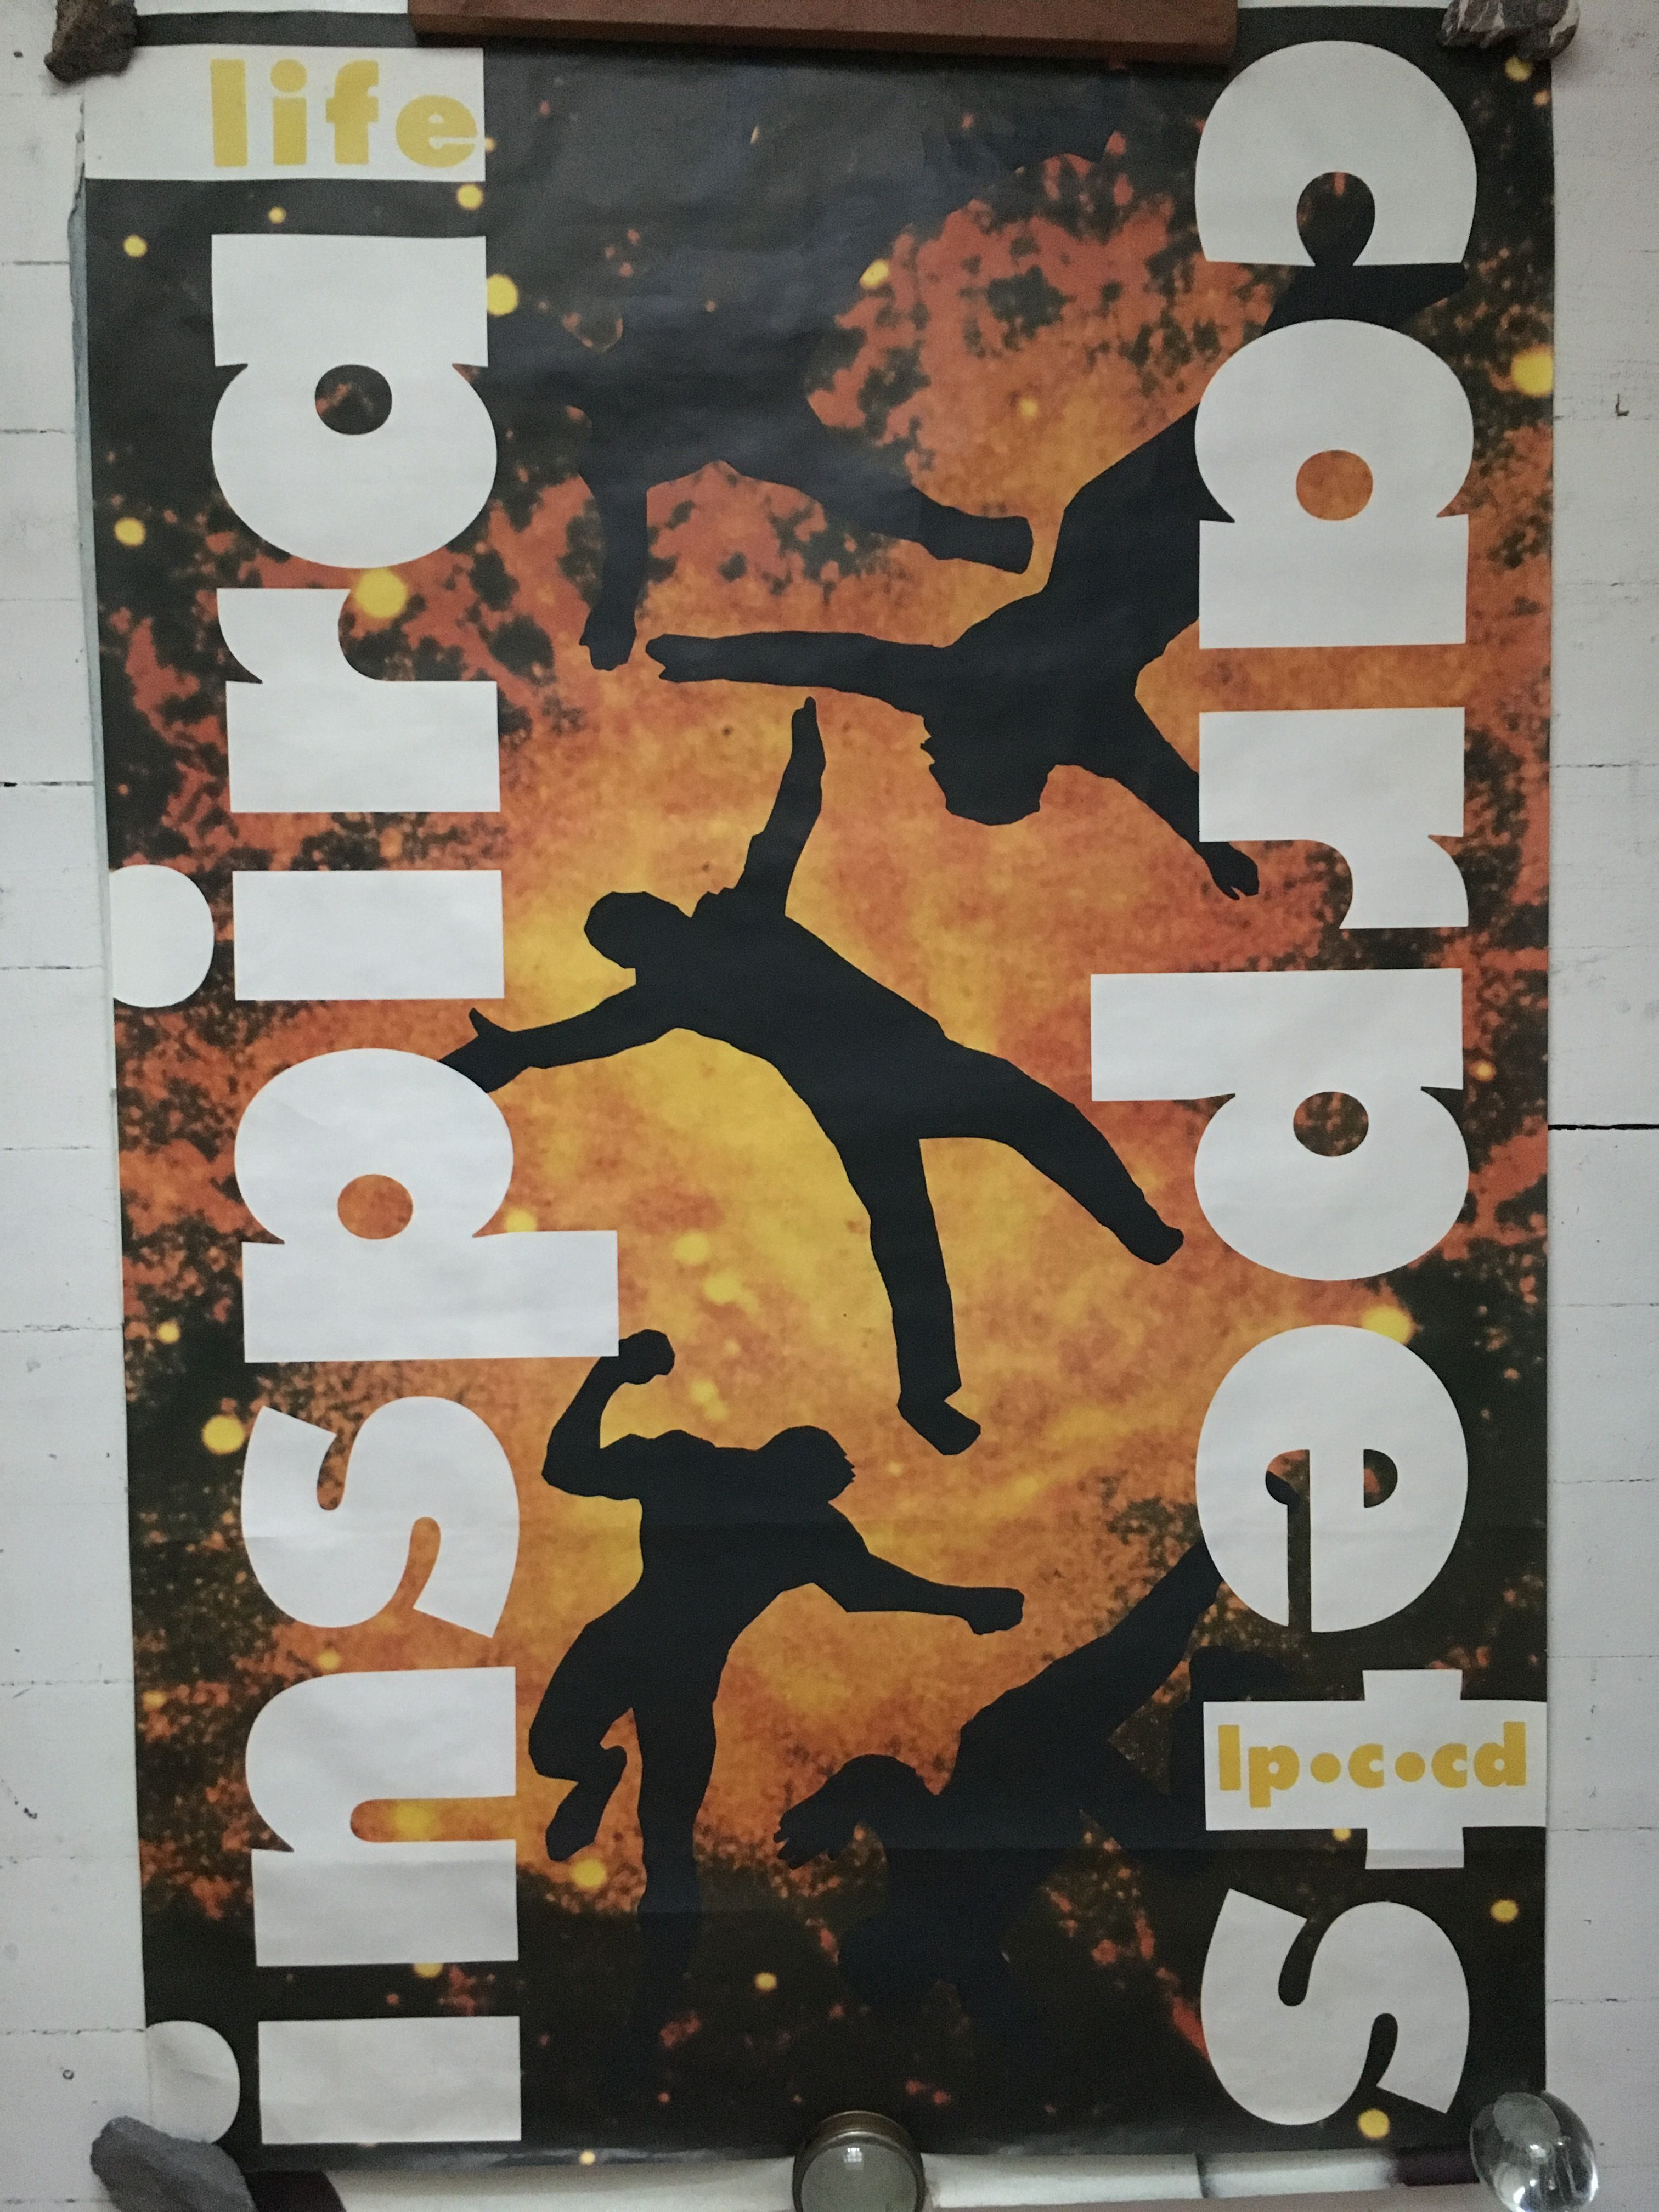 Inspiral Carpets, Life LP and CD promo poster from 1990. For sale on Posterogs